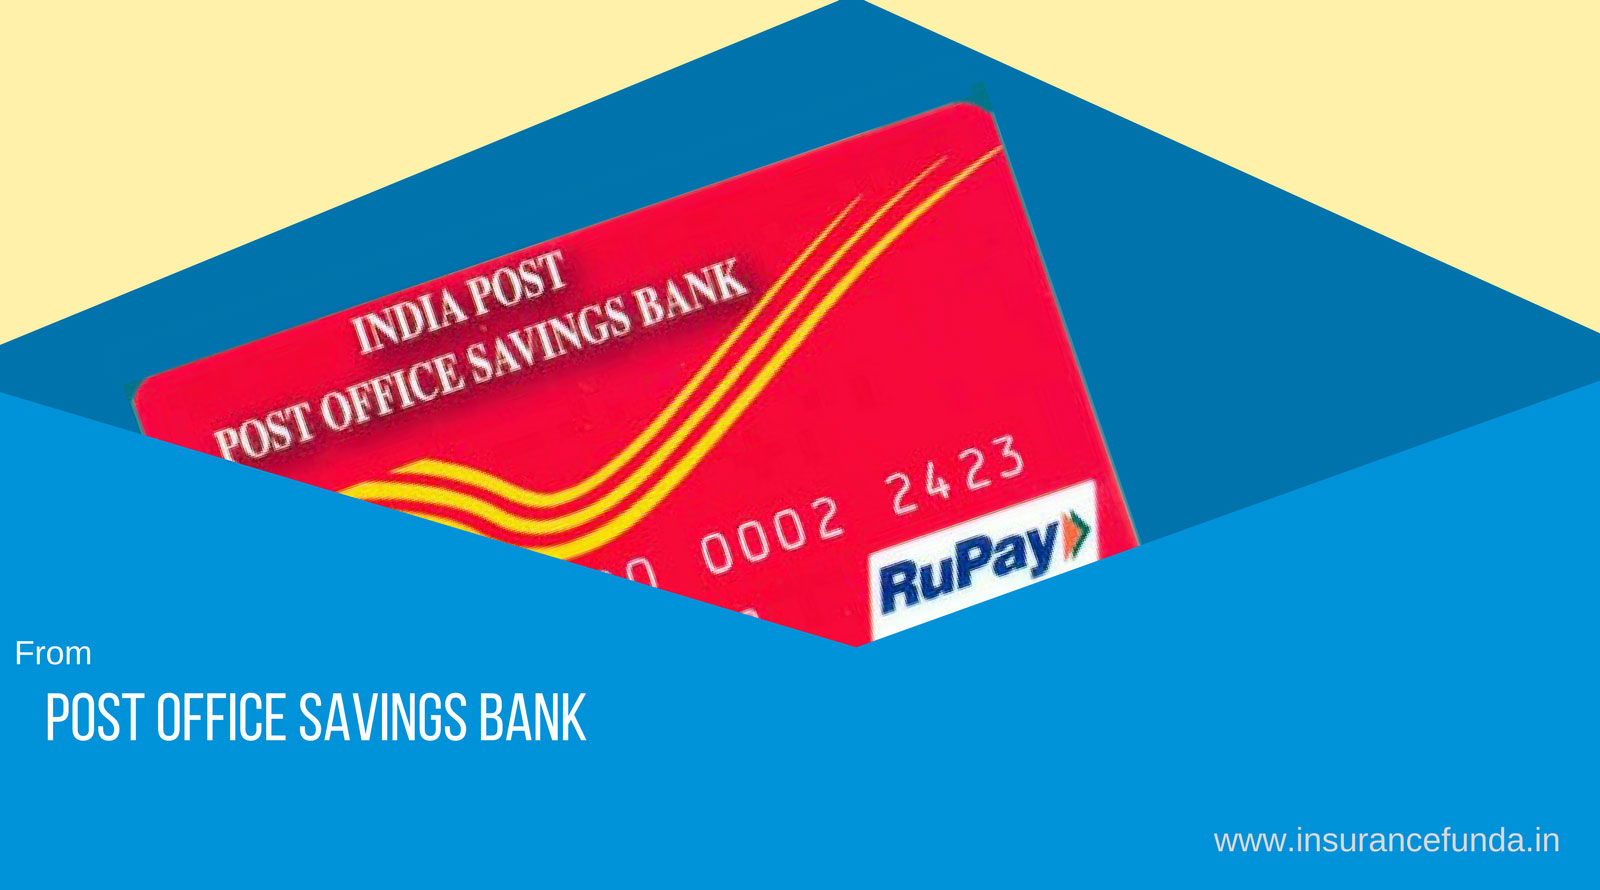 Post office savings bank india post download pdf - Post office investment account interest rates ...